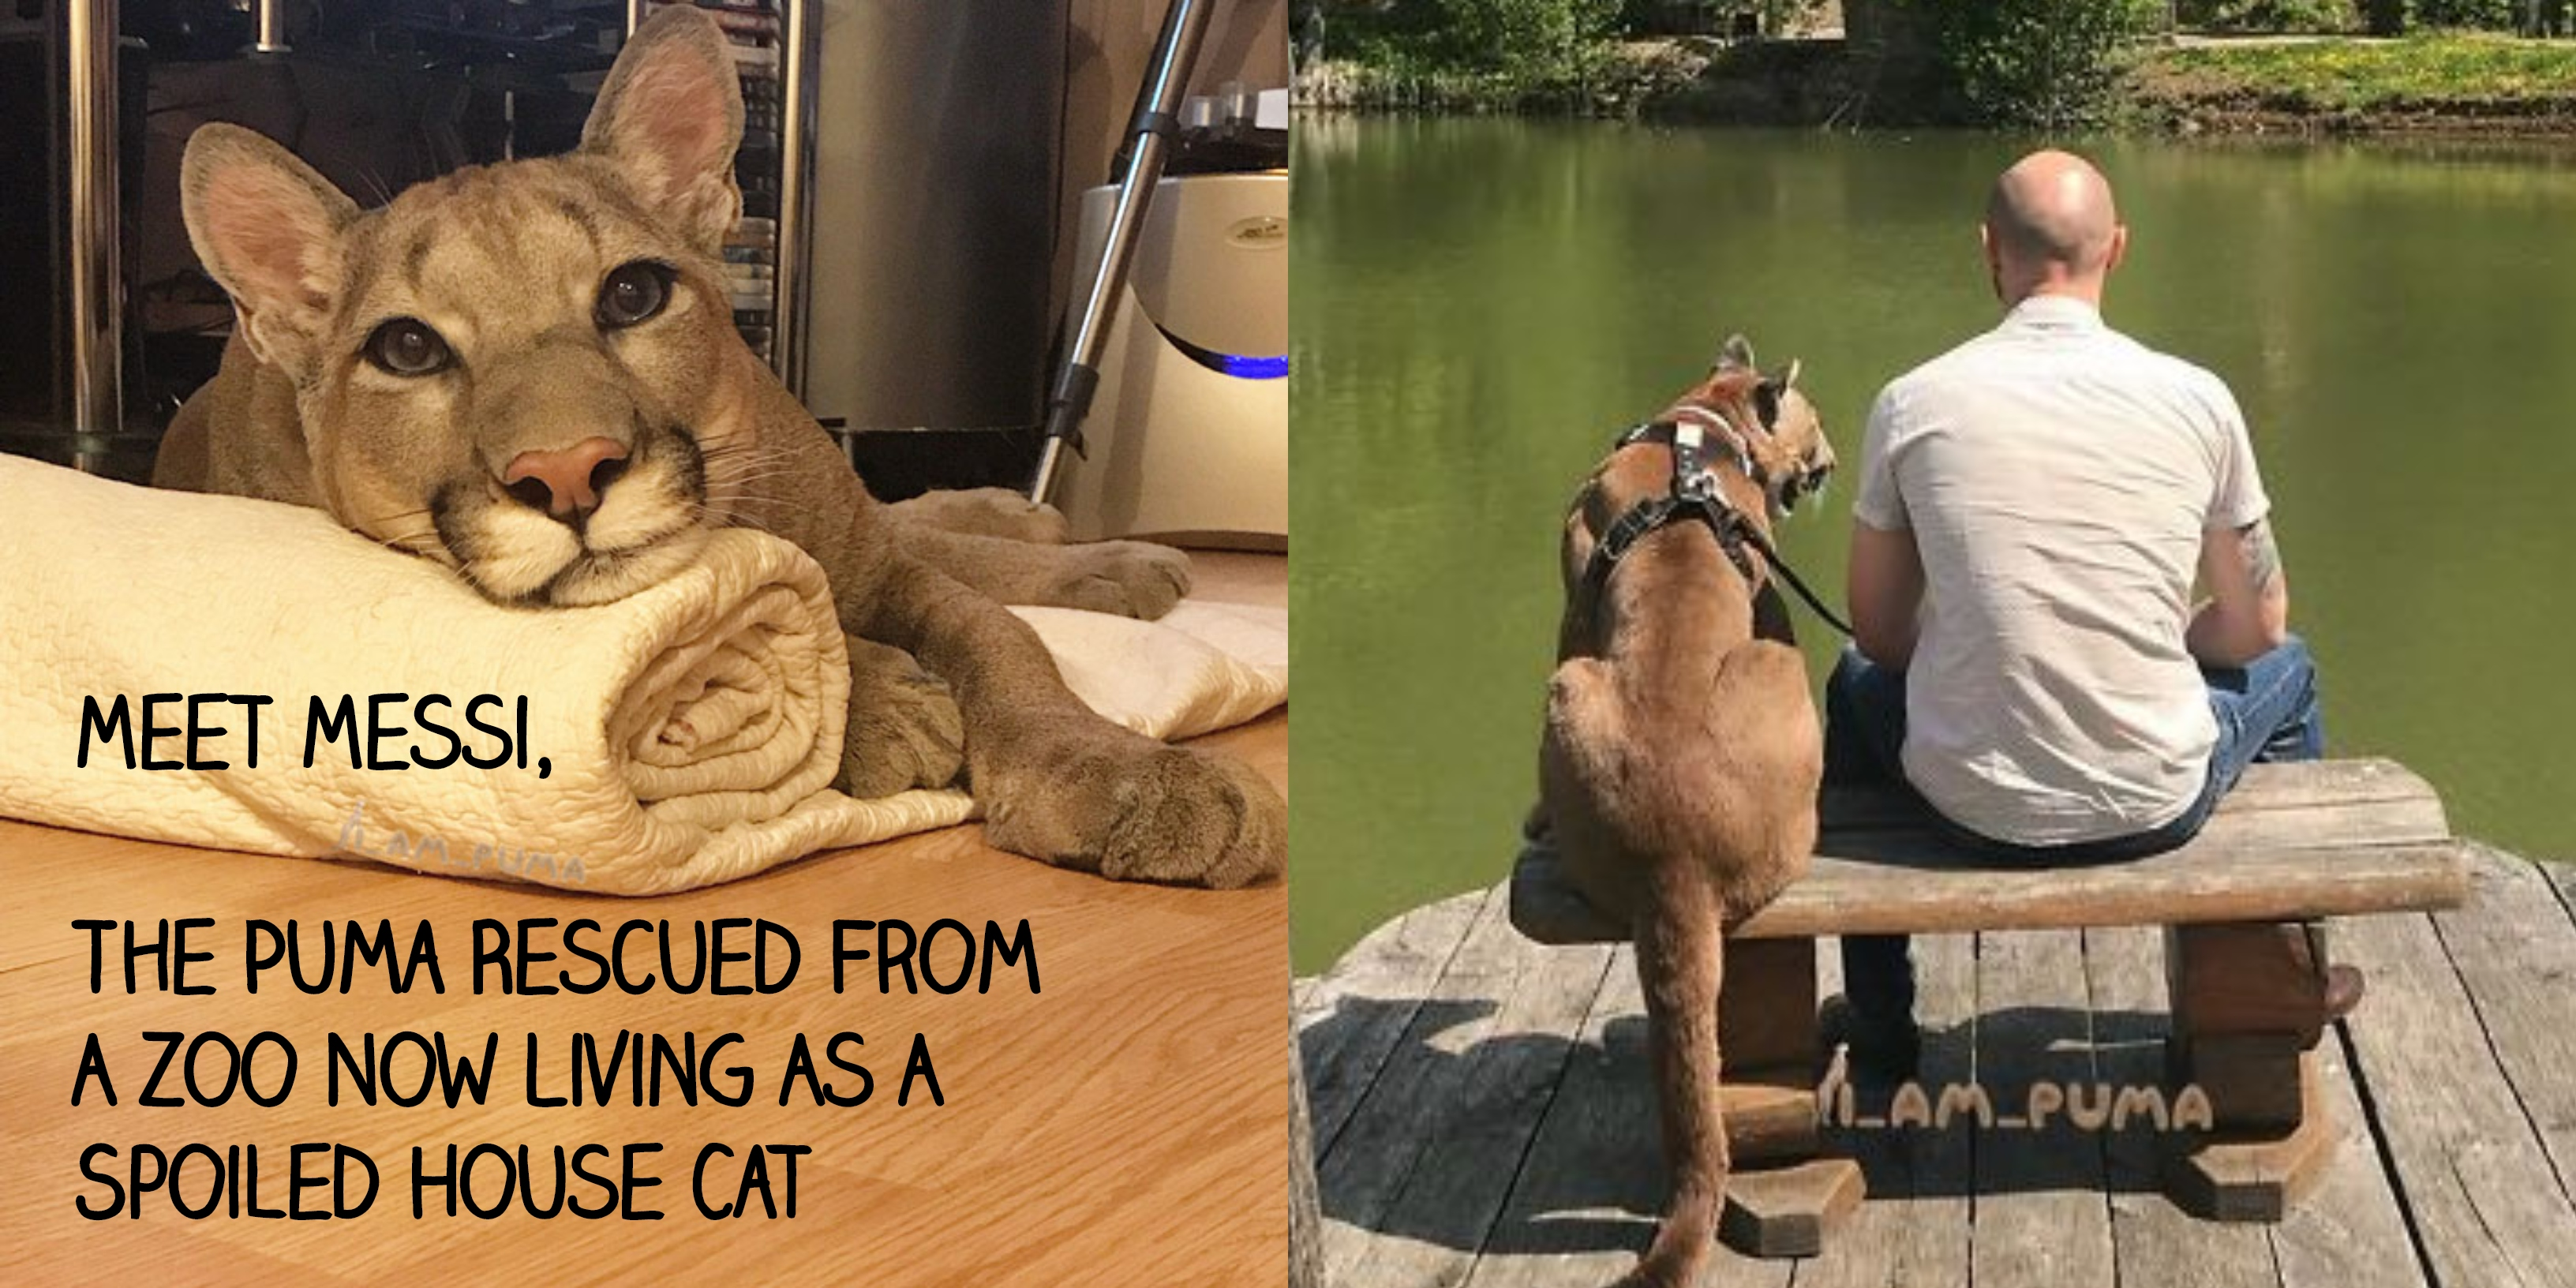 Meet Messi, The Puma Rescued From A Zoo Now Living As A Spoiled House Cat